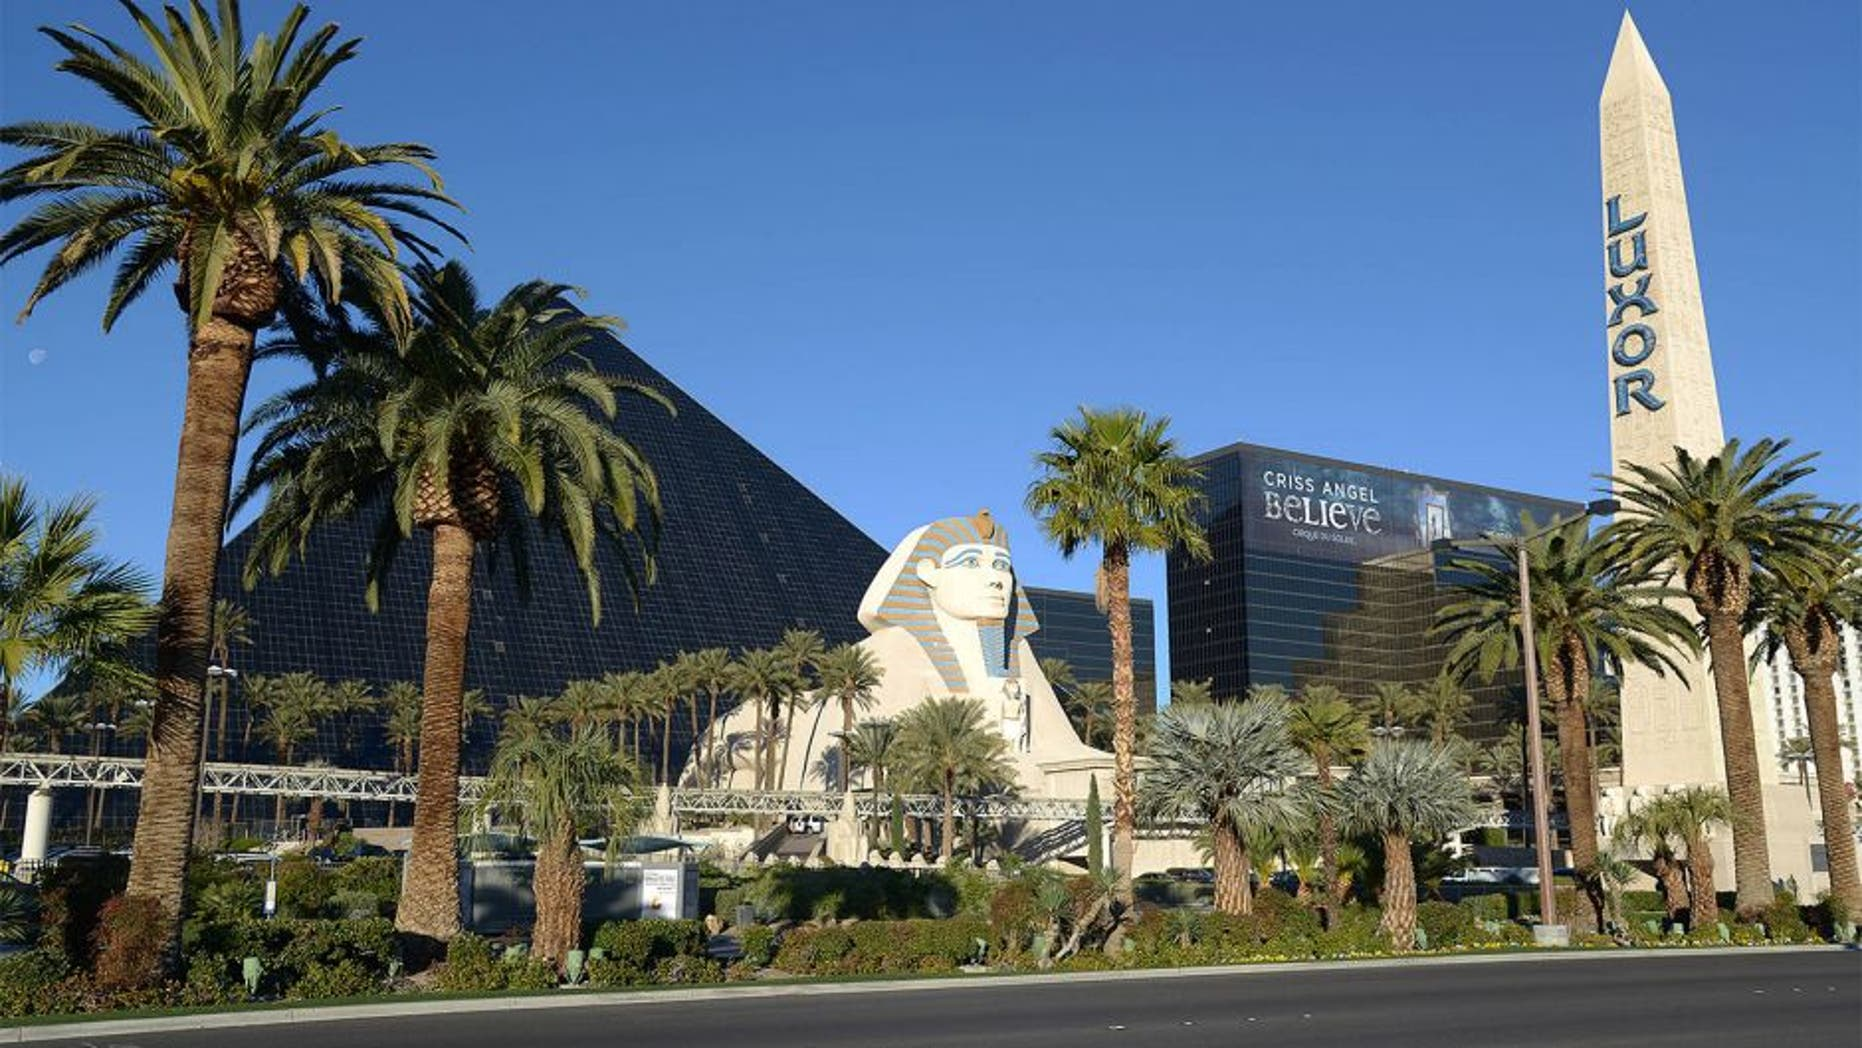 Dec 21, 2013; Las Vegas, NV, USA; General view of the Luxor hotel on the Las Vegas strip on Las Vegas Blvd. before the Las Vegas Bowl between the Fresno State Bulldogs and the Southern California Trojans. Mandatory Credit: Kirby Lee-USA TODAY Sports